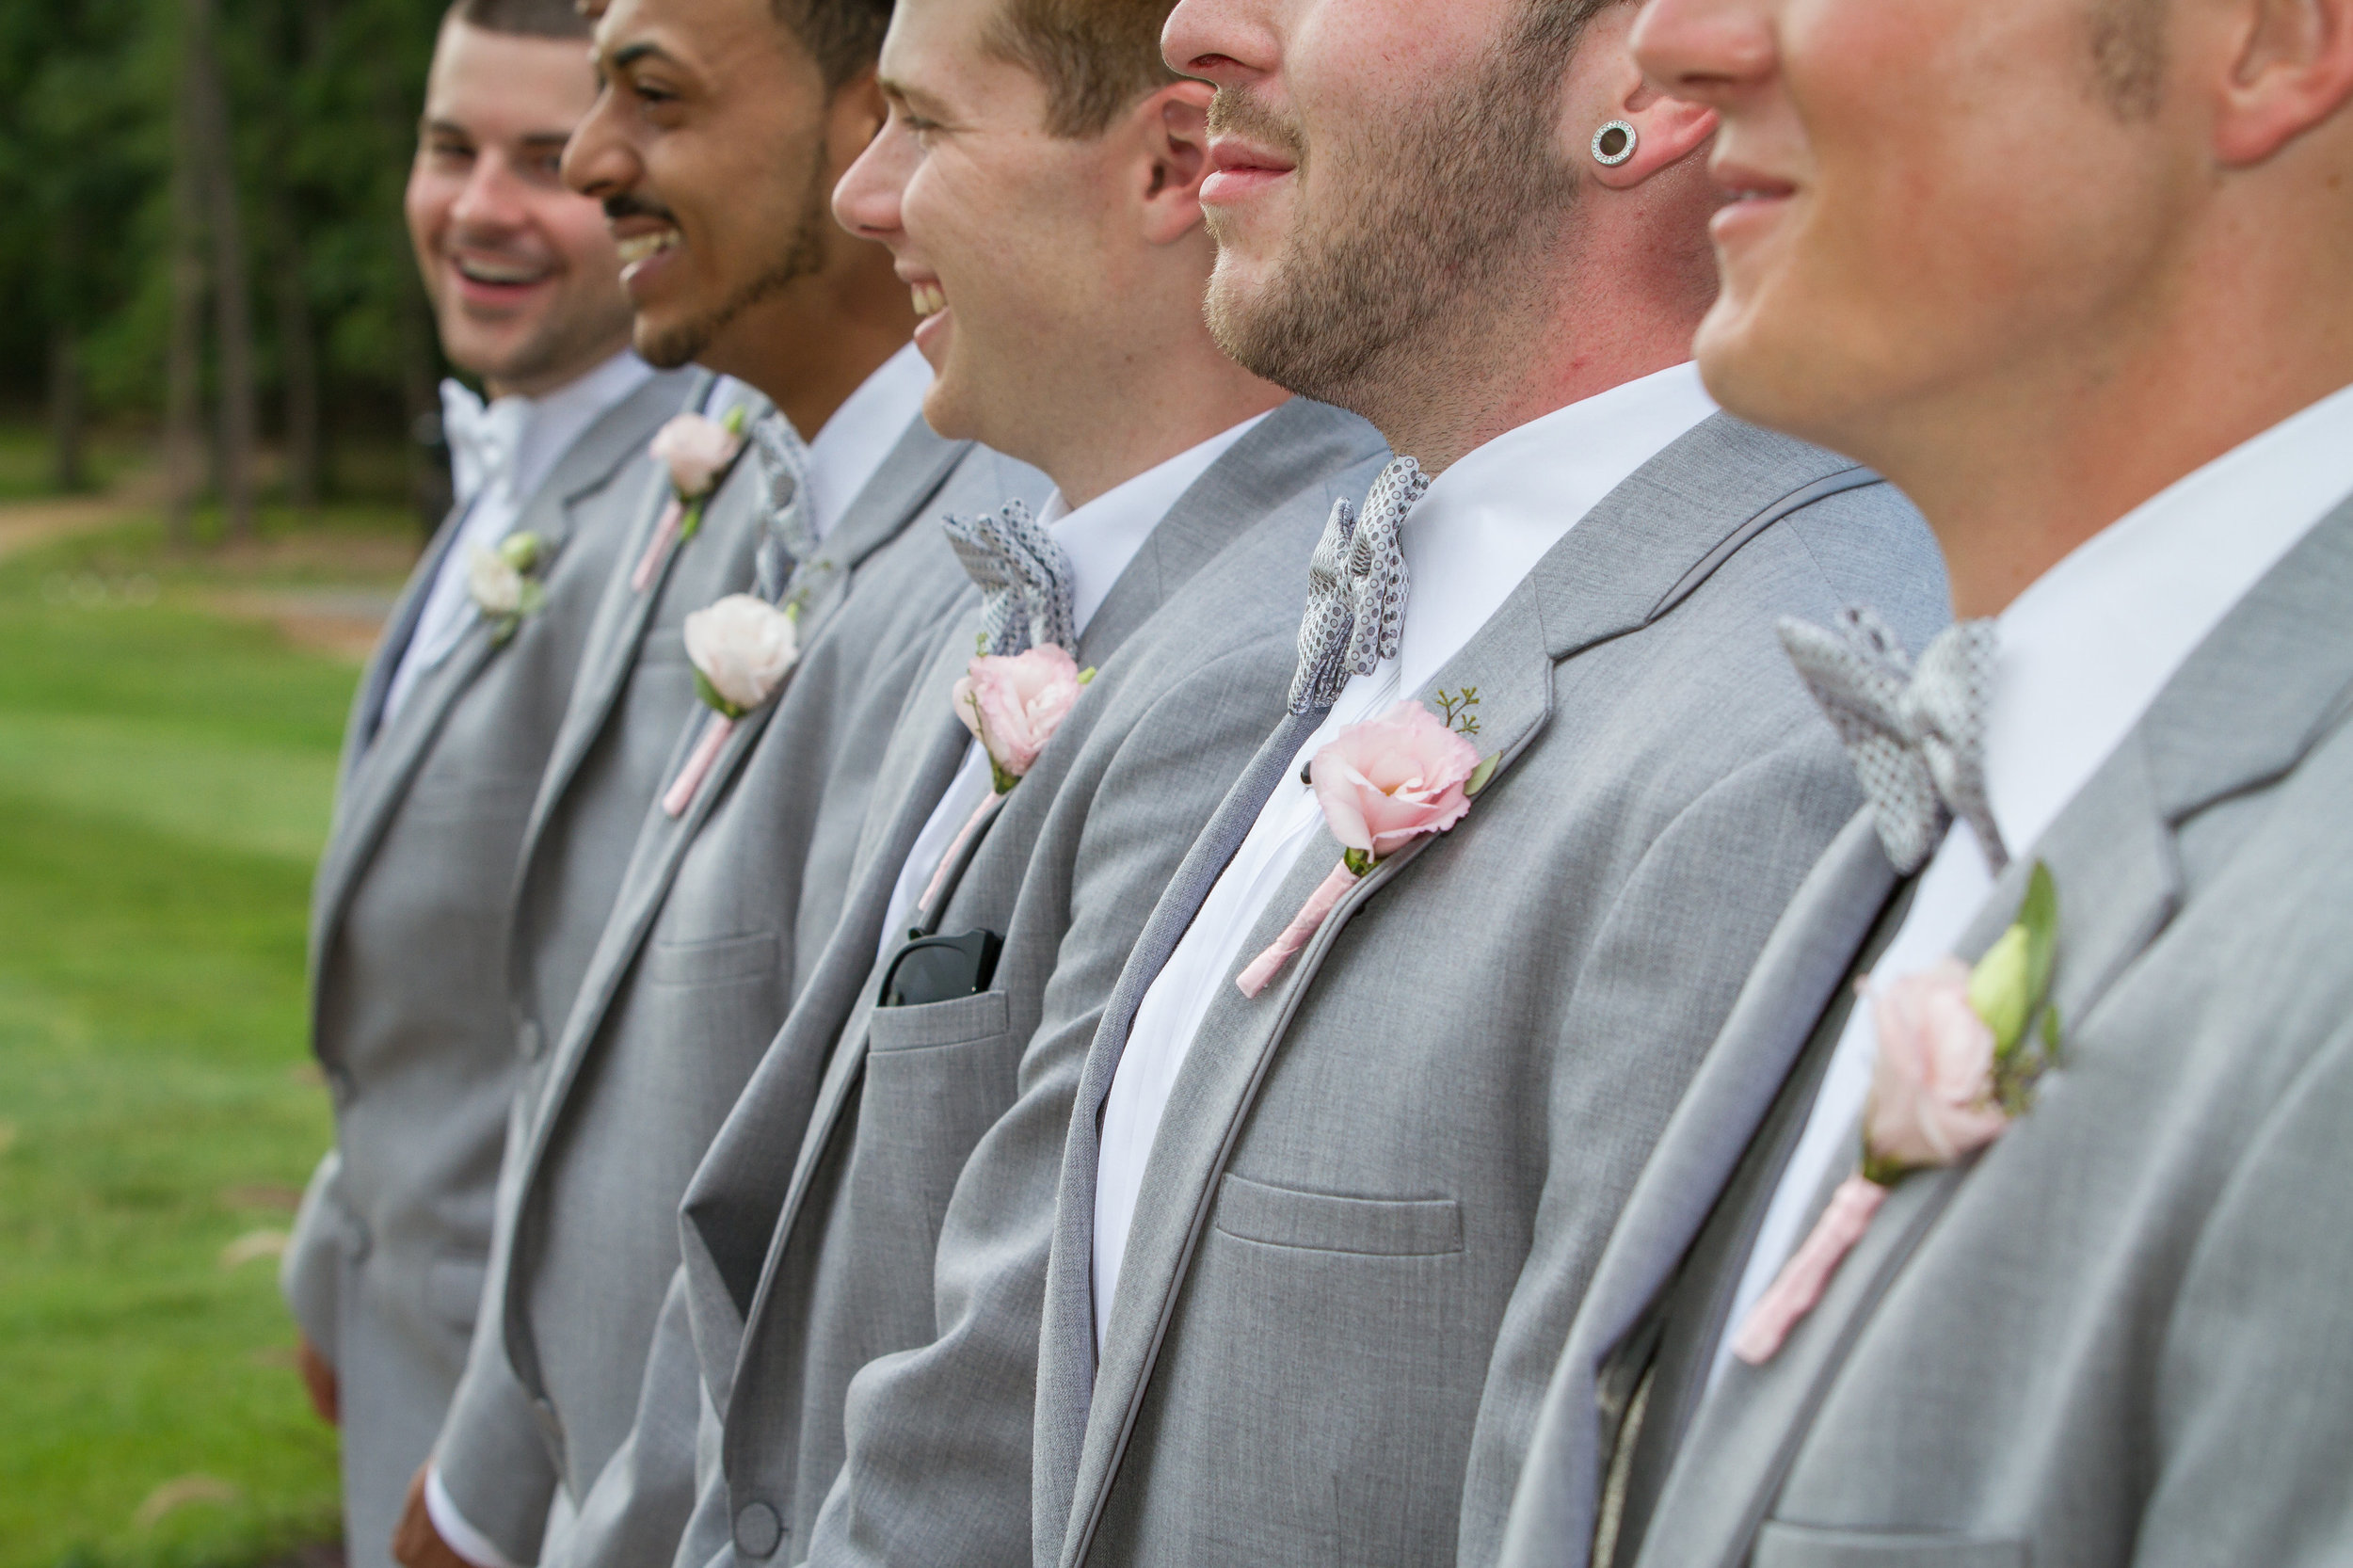 Awesome Grey Suits Wedding Motif - Womens Dresses & Gowns ...